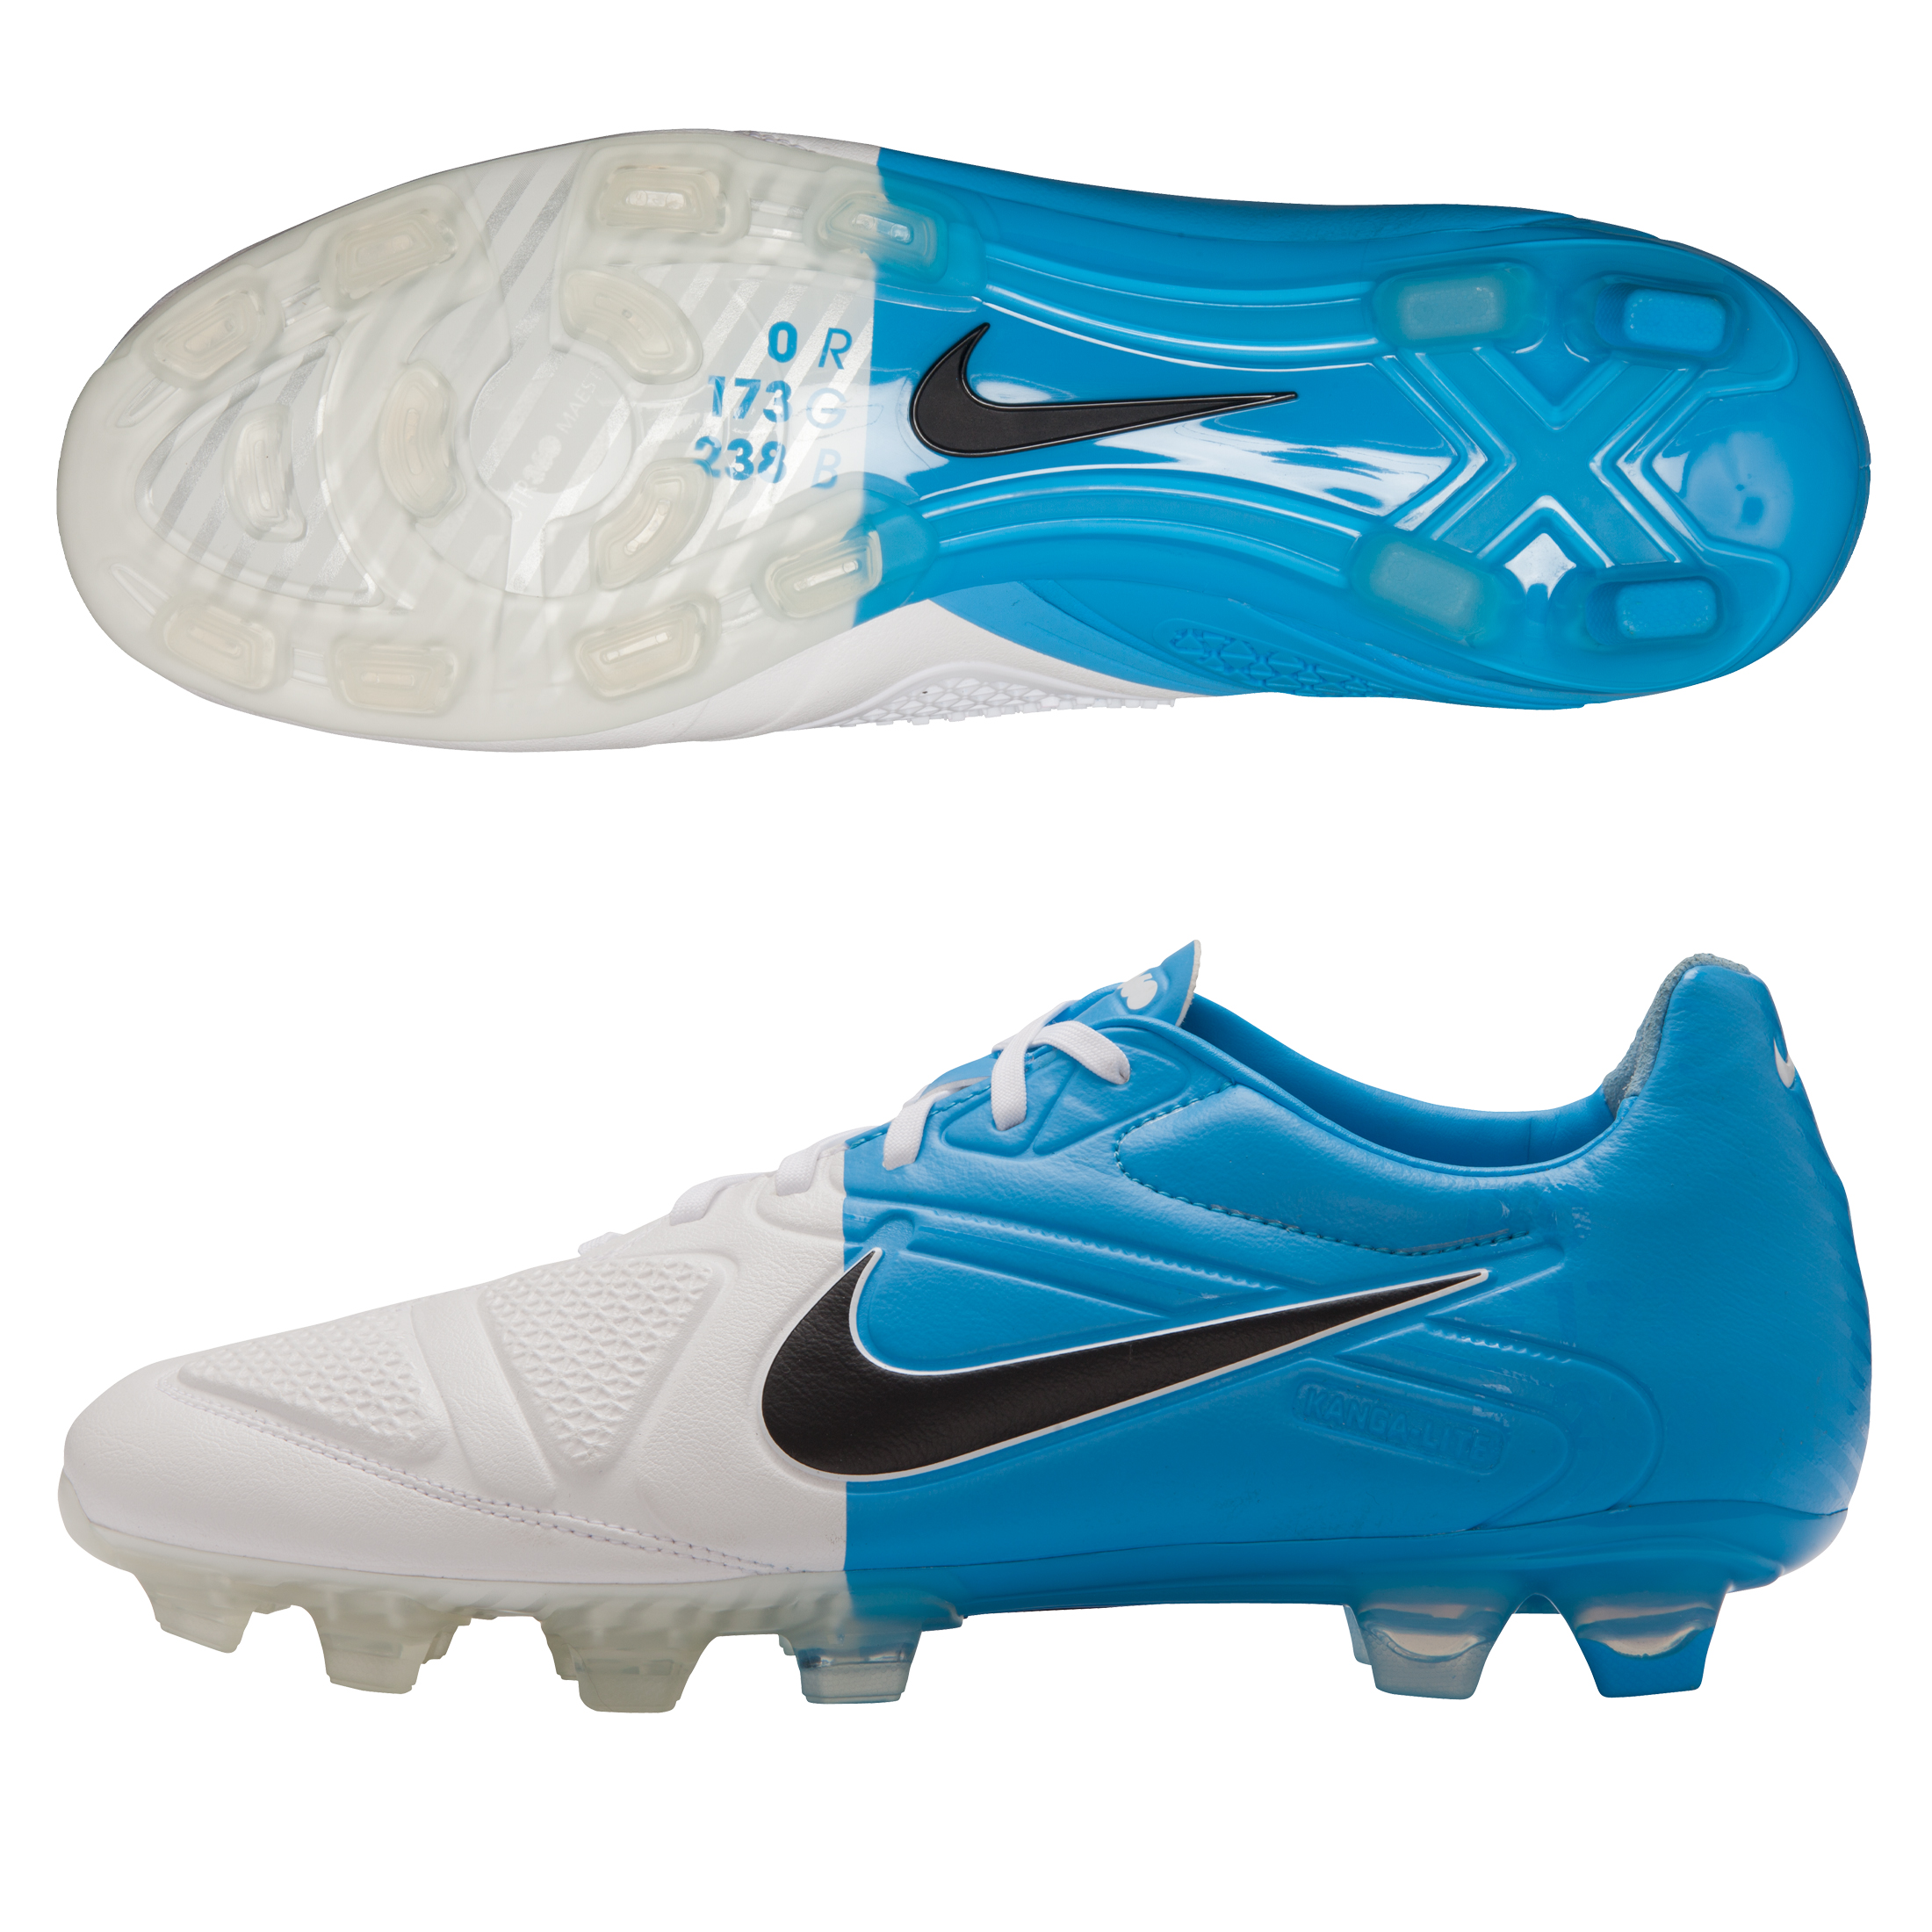 CTR360 Maestri II FG White/Black/Blue Glow